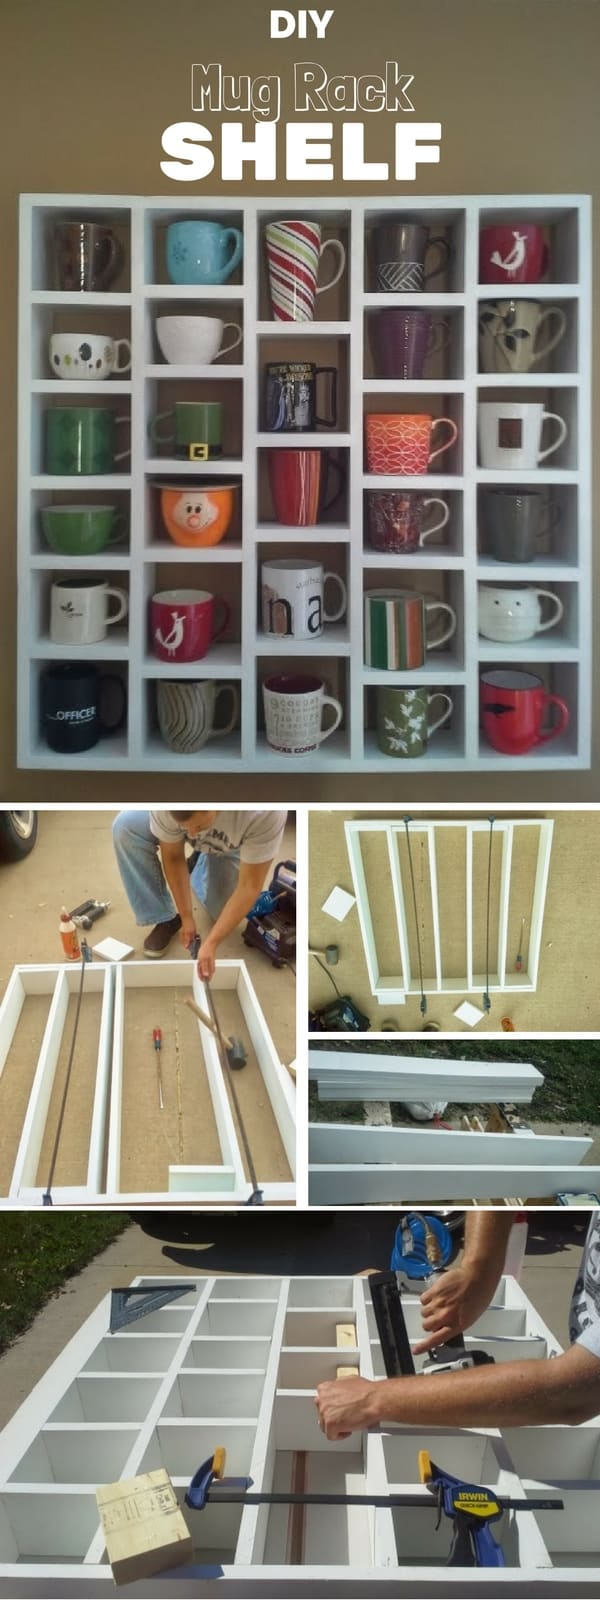 mug-rack-shelf